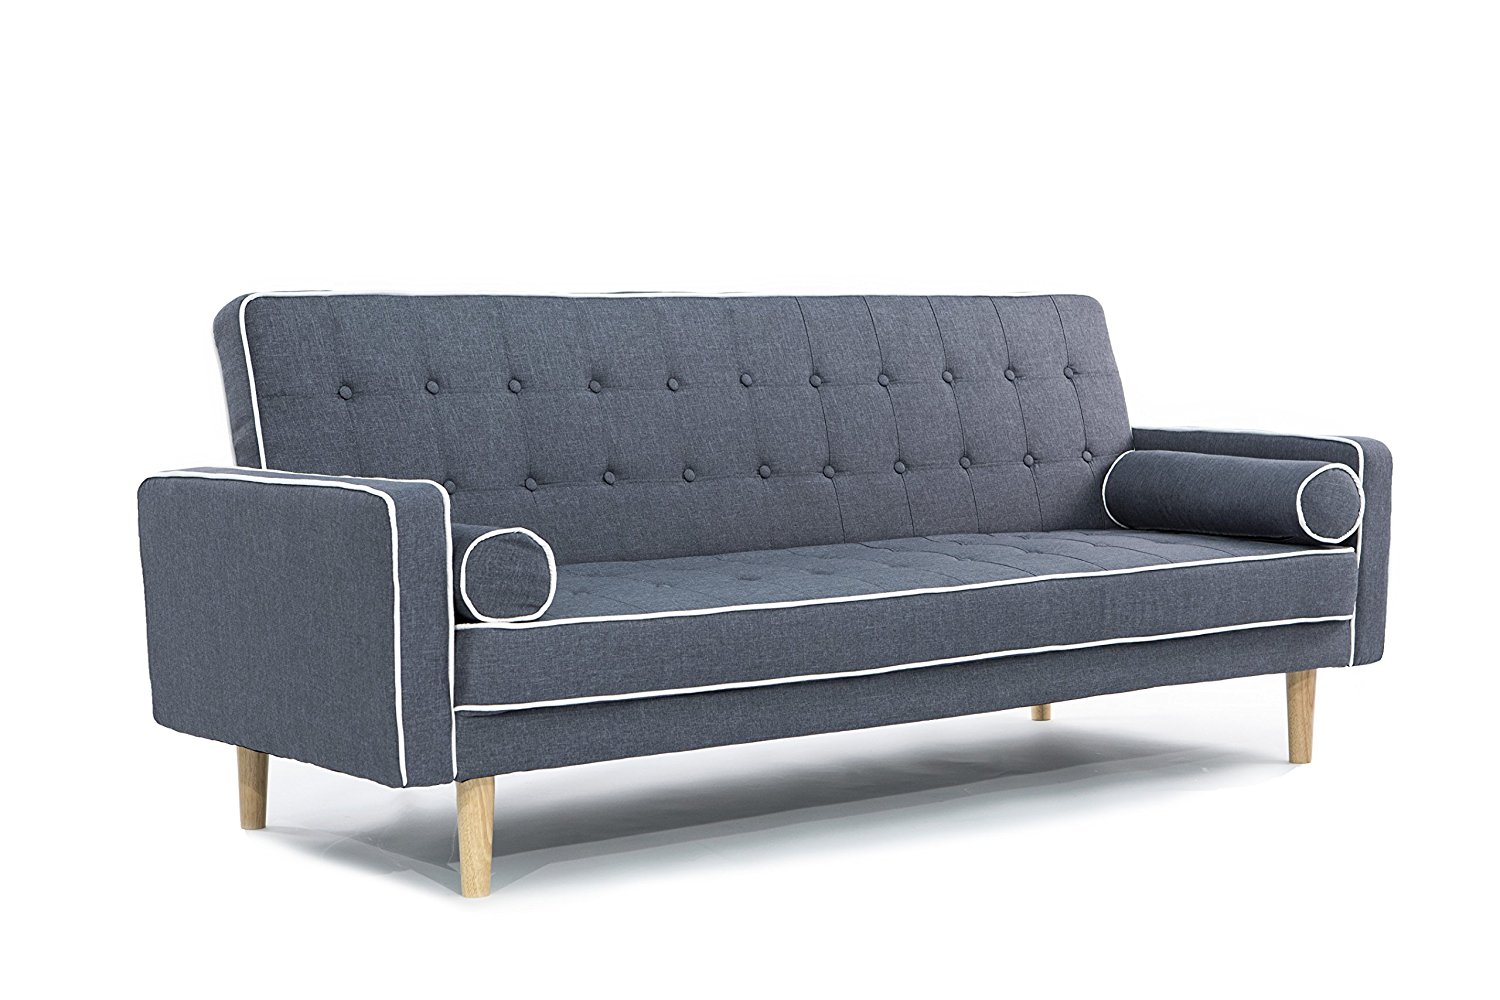 Mid-Century Modern Two Tone Vintage Linen Sleeper Futon Sofa (Dark Grey)